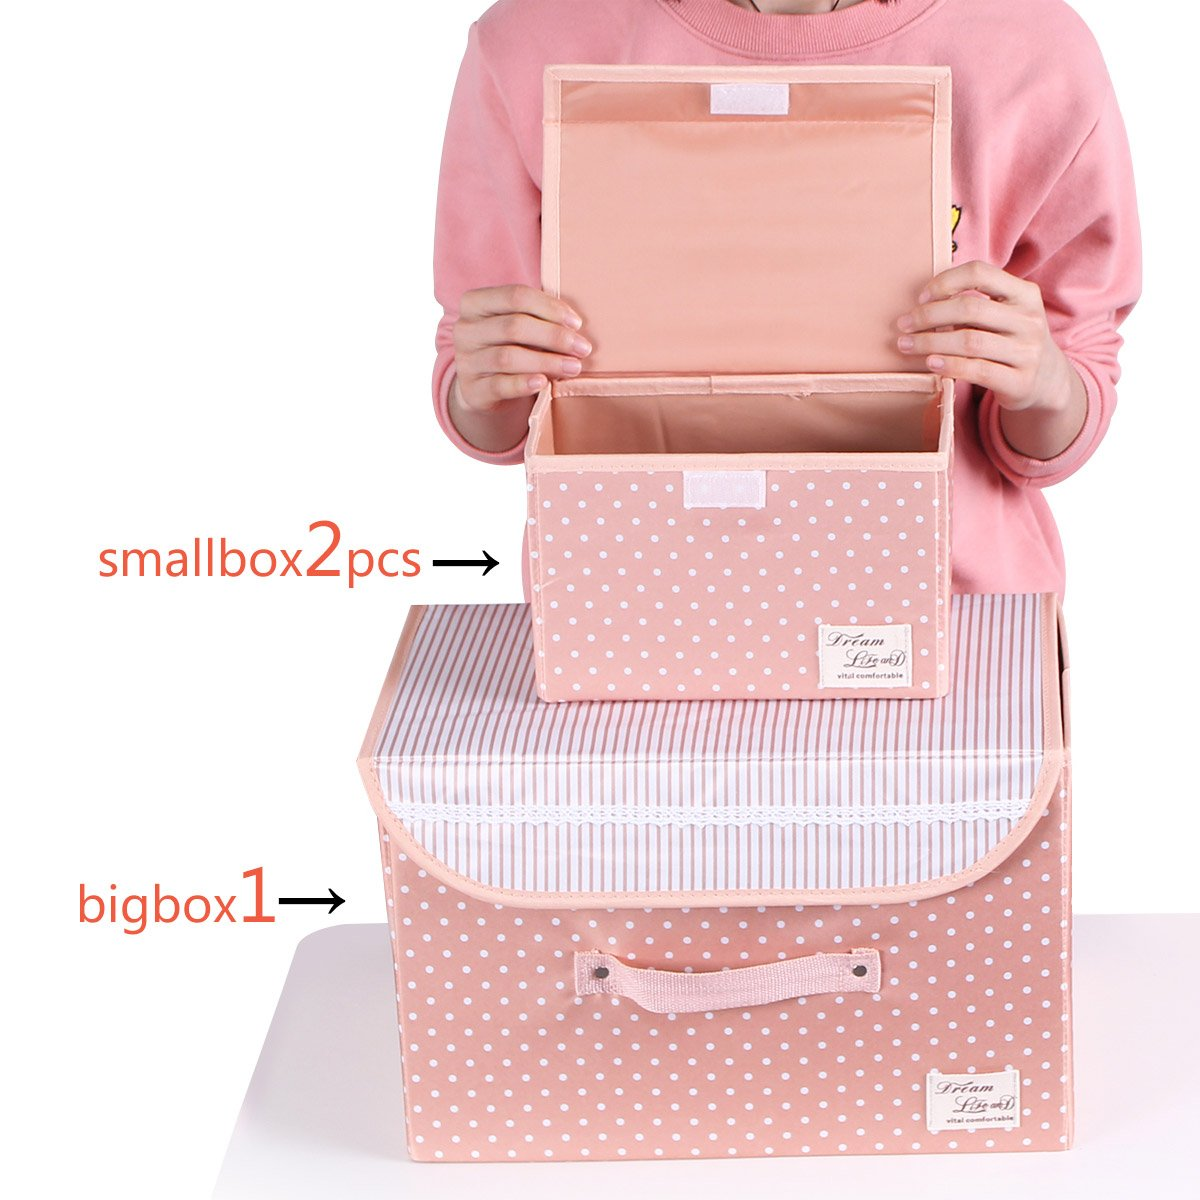 Sivin 1Pc M size+2 Pcs S size Foldable Storage cubes Storage Box Holder Container Organizer Storage Bins with lids and Handles For office,magzines,books,Kid's clothings,towels,Snacks (Dot Pink)